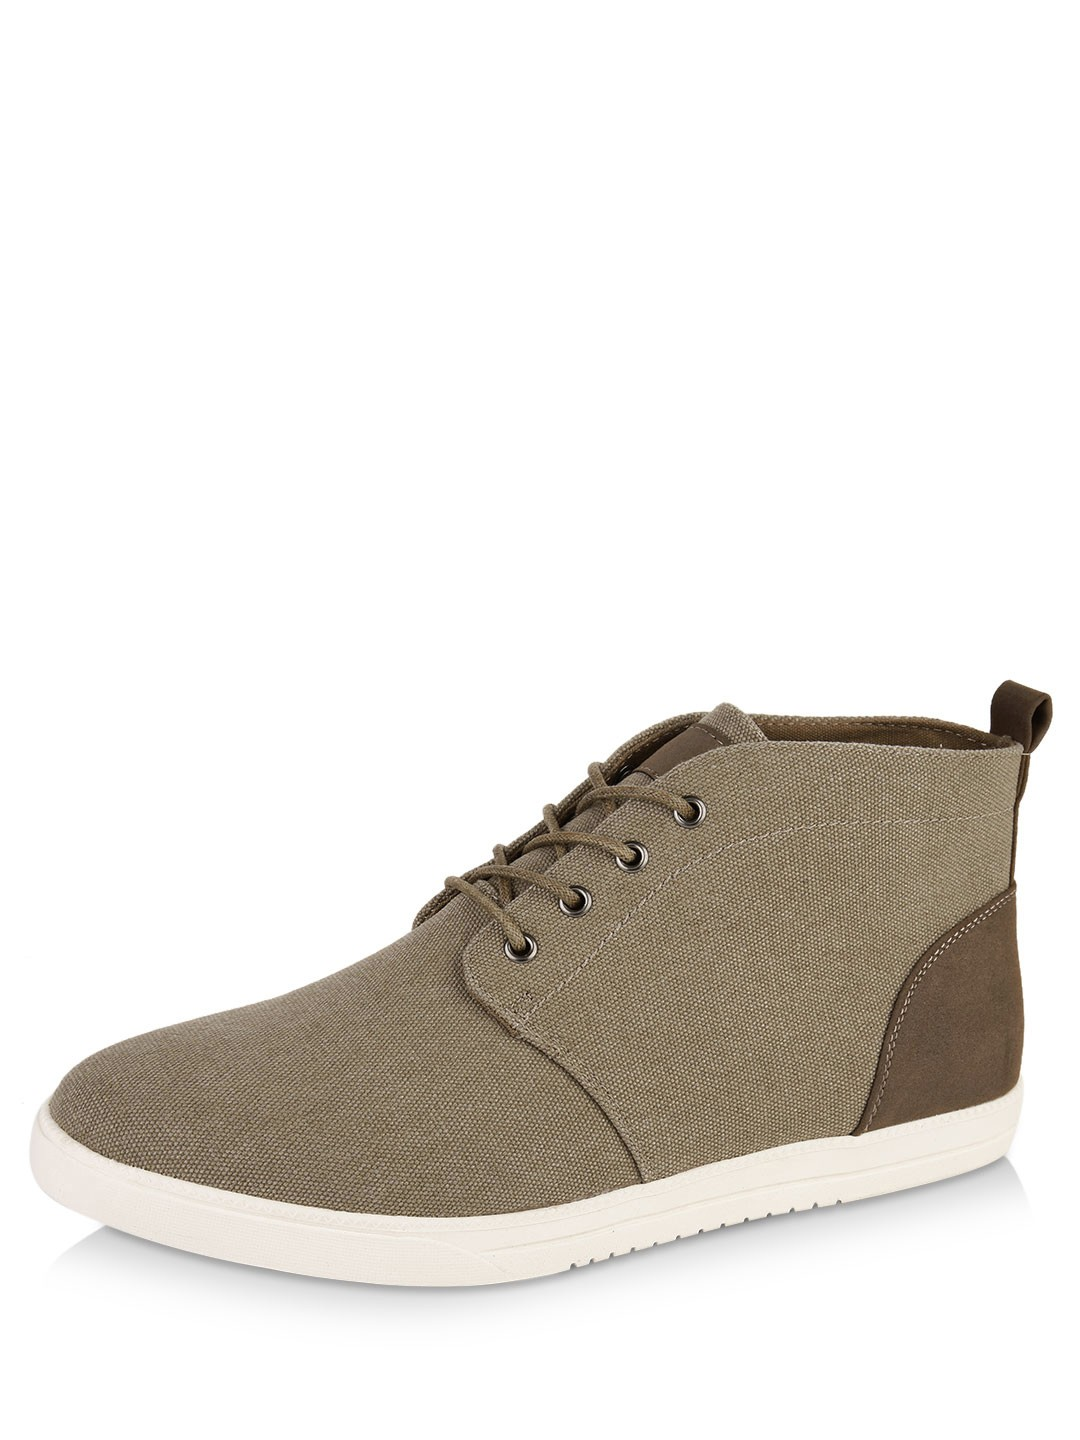 buy new look canvas chukka boots for s multi